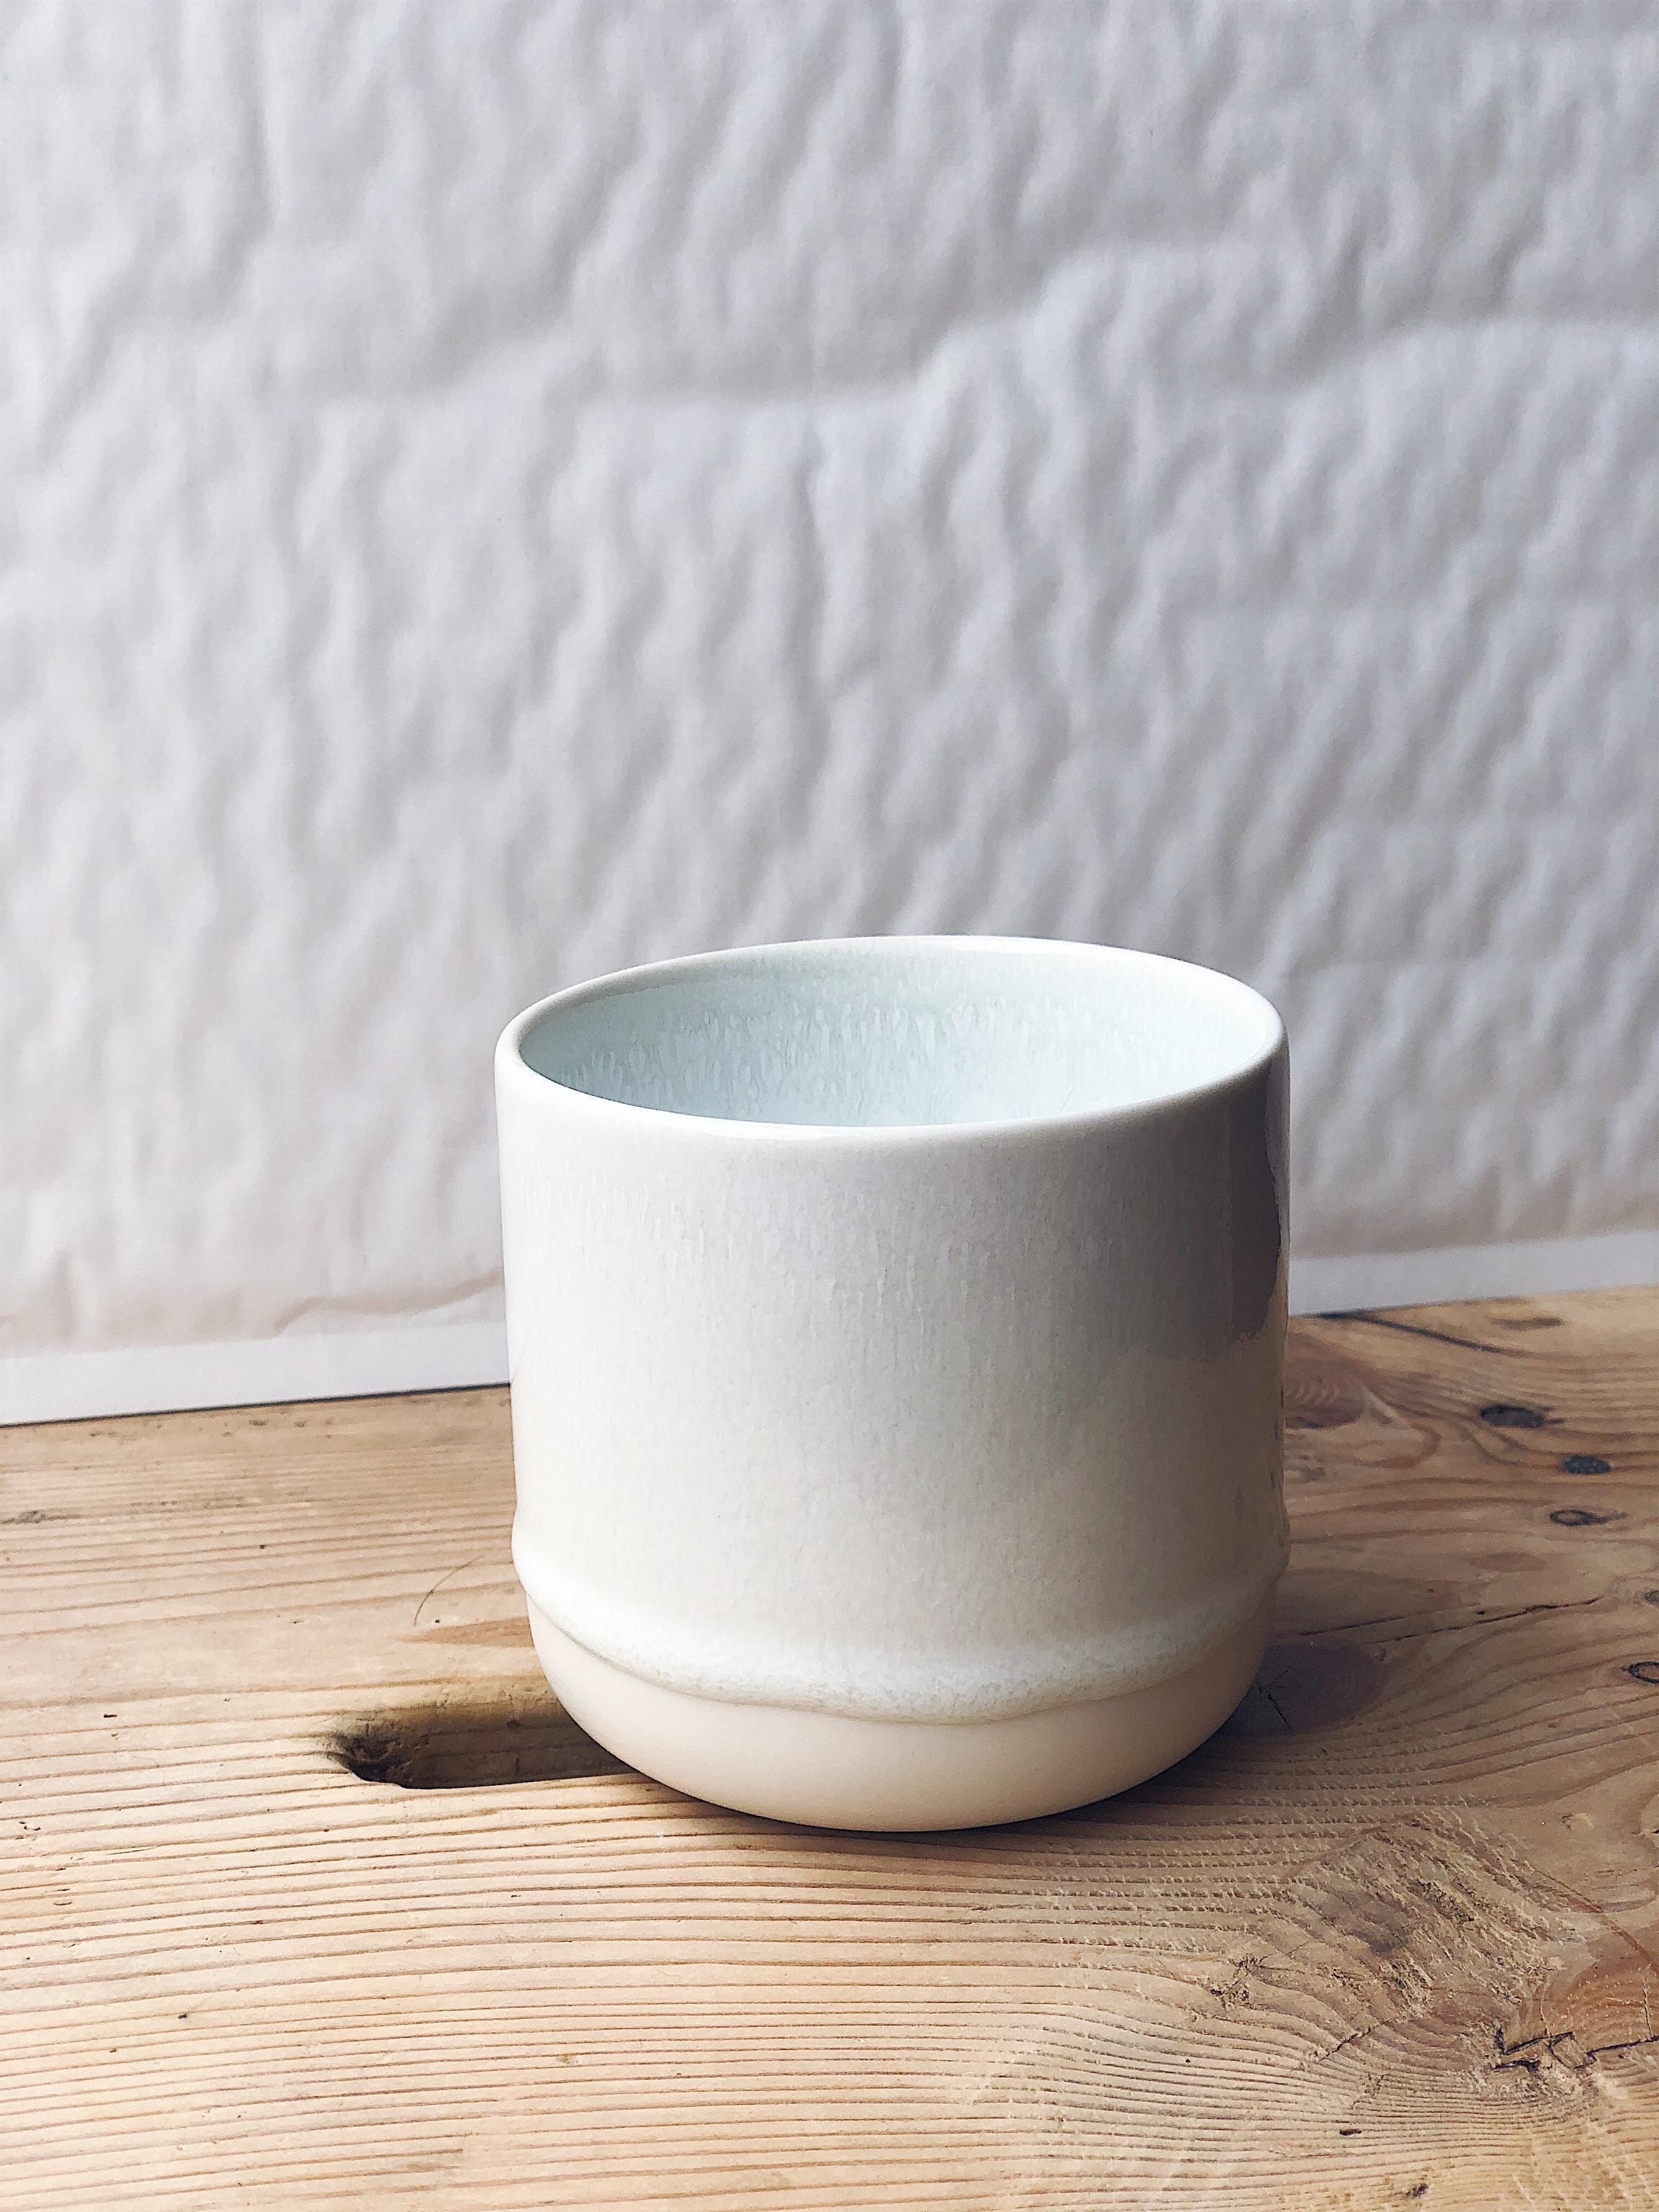 STUDIO ARHØJ - Quench mug, Sea Foam